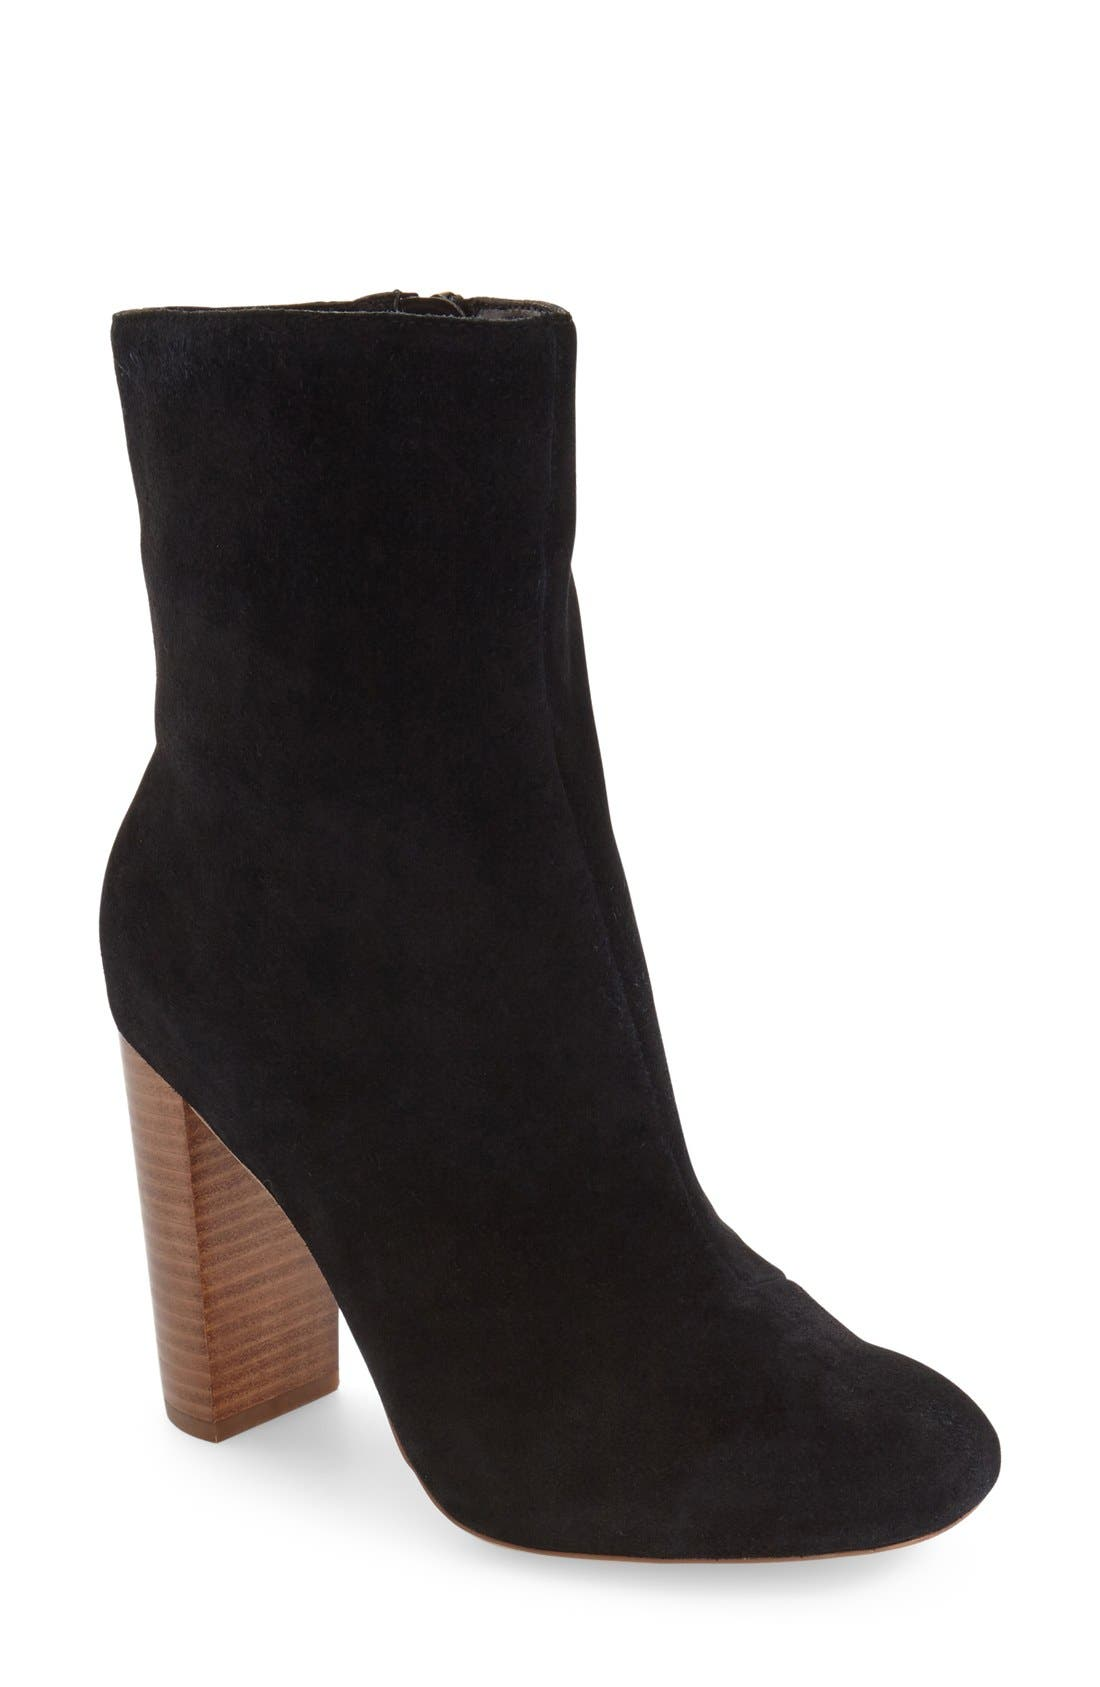 Veronica Bootie,                             Main thumbnail 1, color,                             003